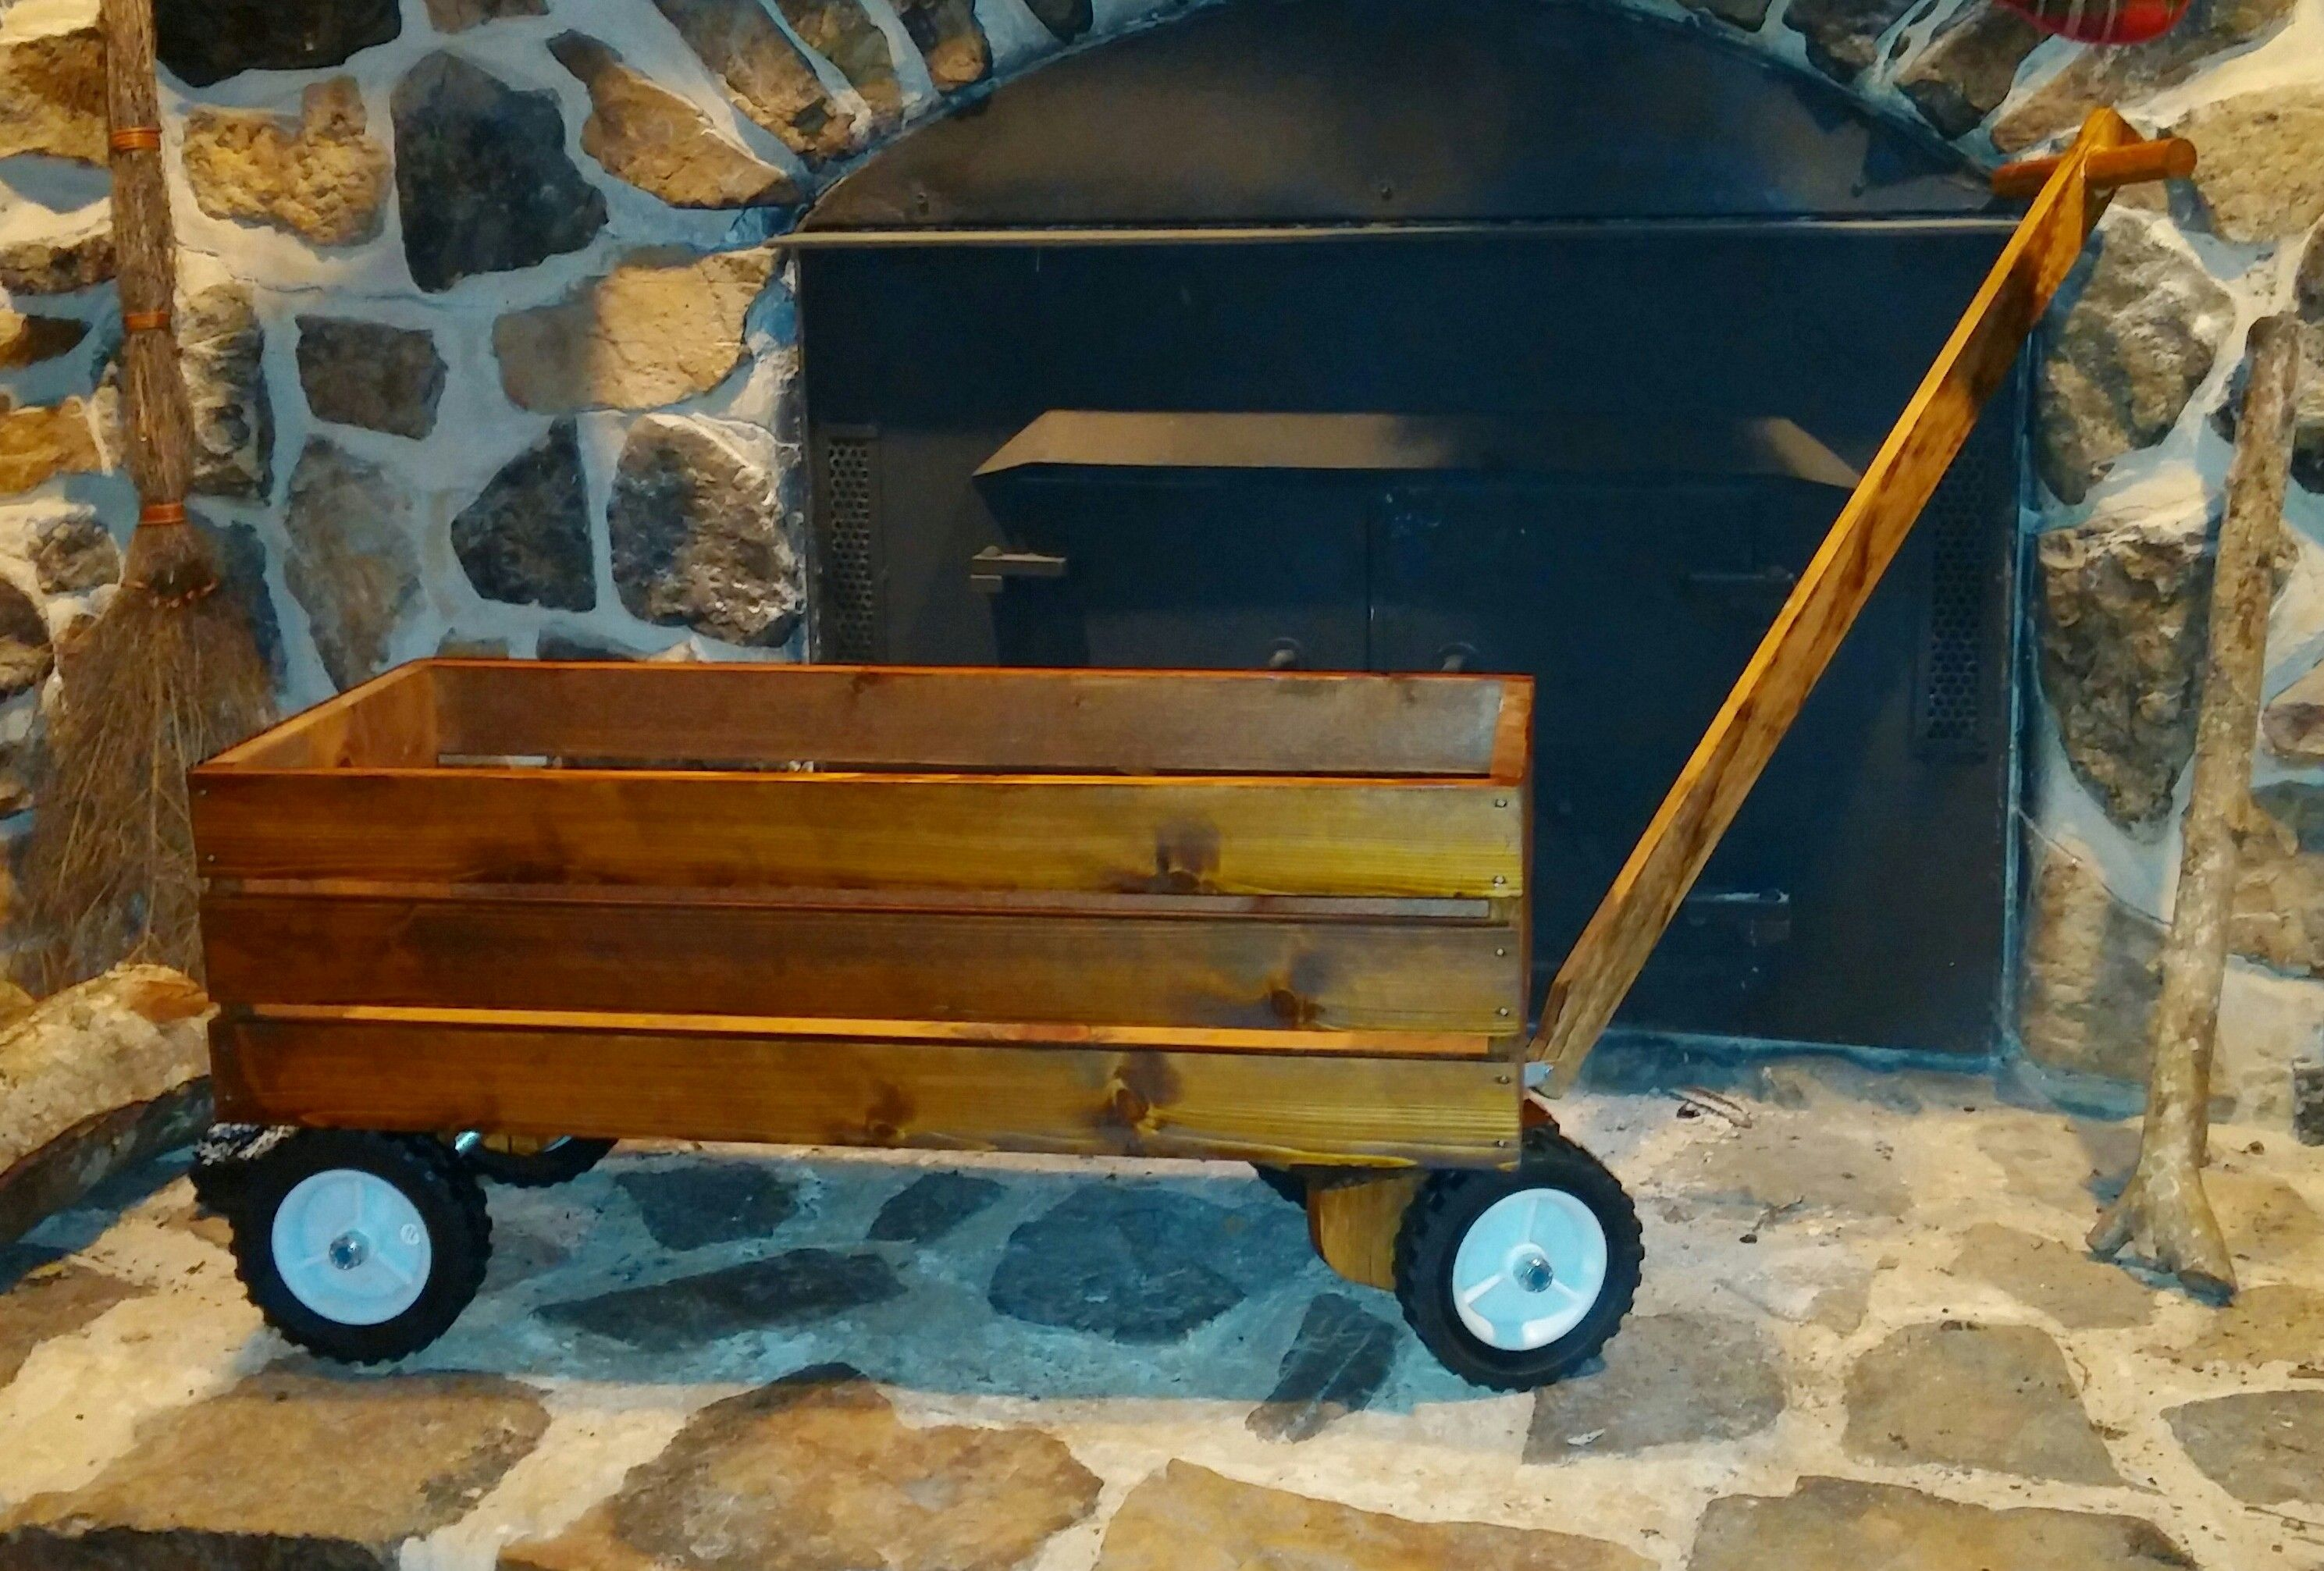 Wood wagon do it yourself home projects from ana white wood wagon do it yourself home projects from ana white solutioingenieria Choice Image